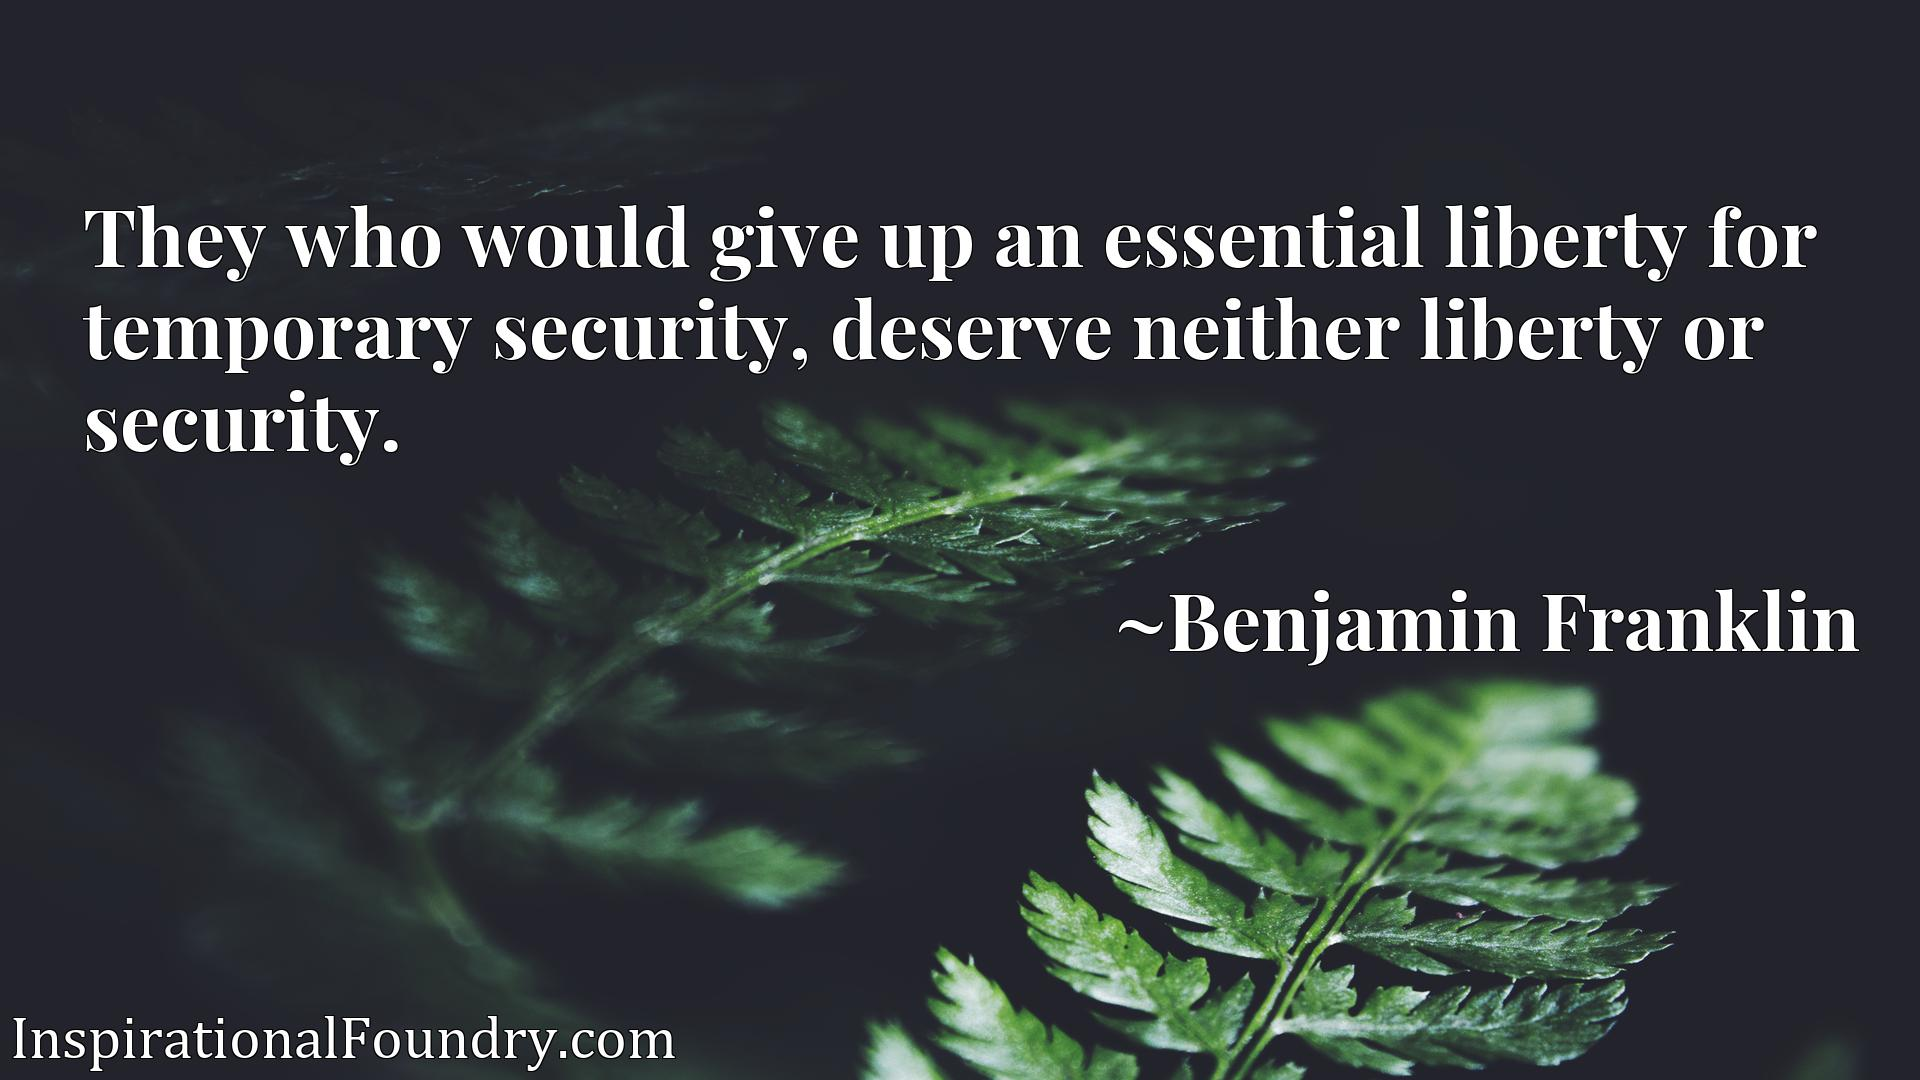 They who would give up an essential liberty for temporary security, deserve neither liberty or security.